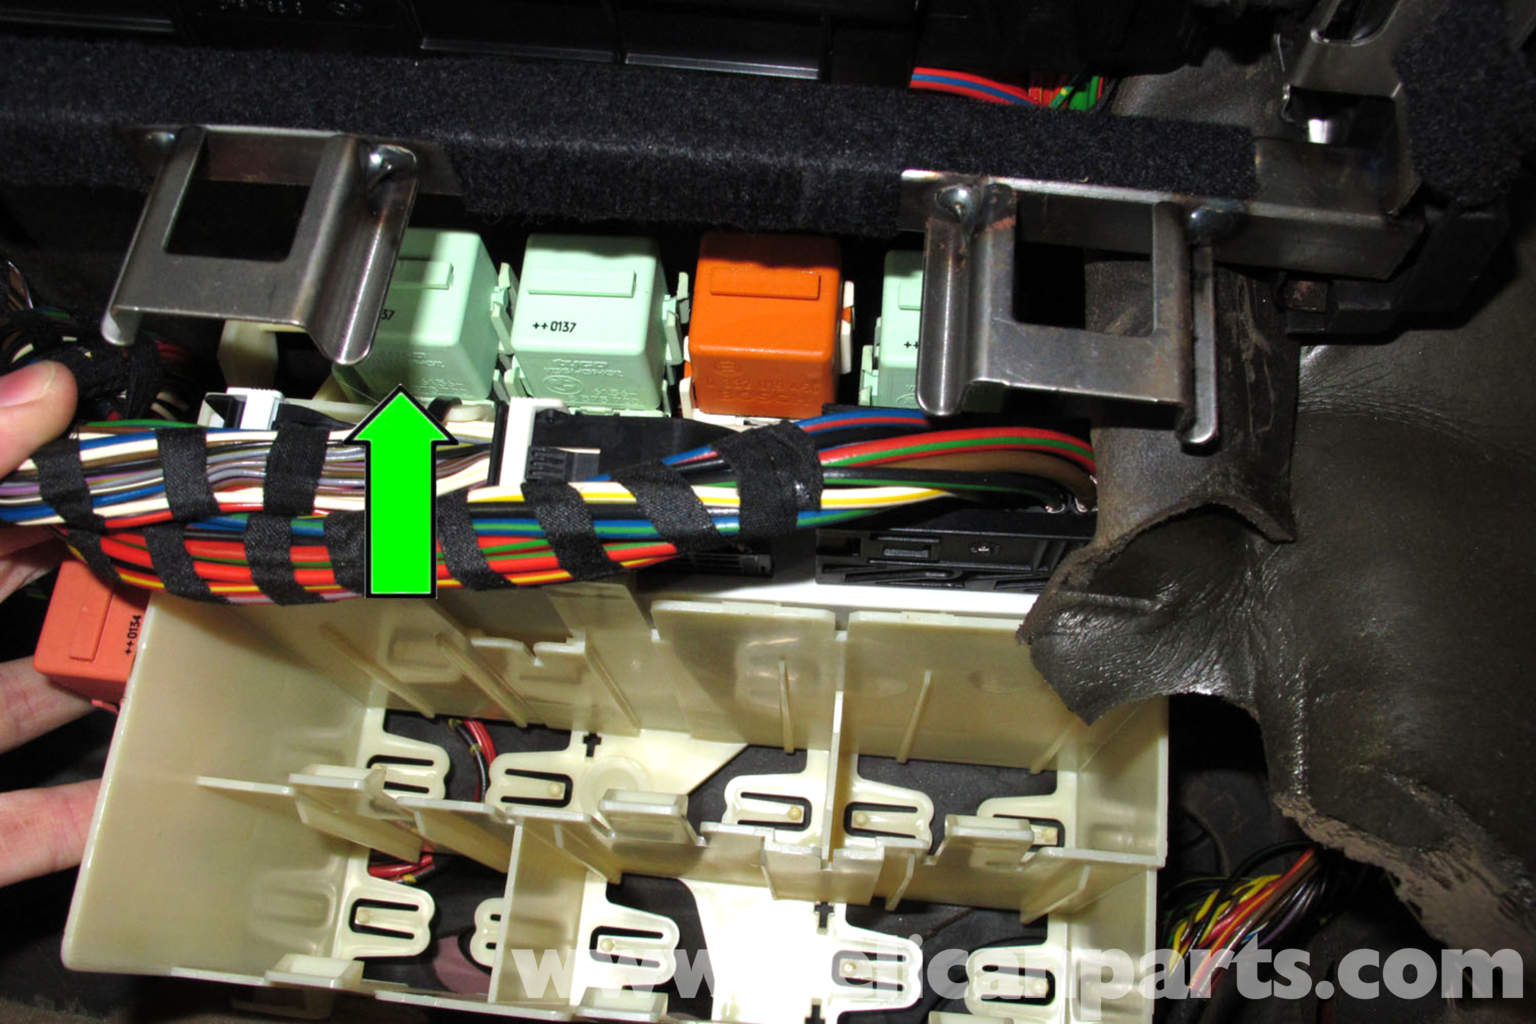 2005 Bmw 330ci Fuse Box Guide And Troubleshooting Of Wiring Diagram 2004 E46 Fuel Pump Testing 325i 2001 Location